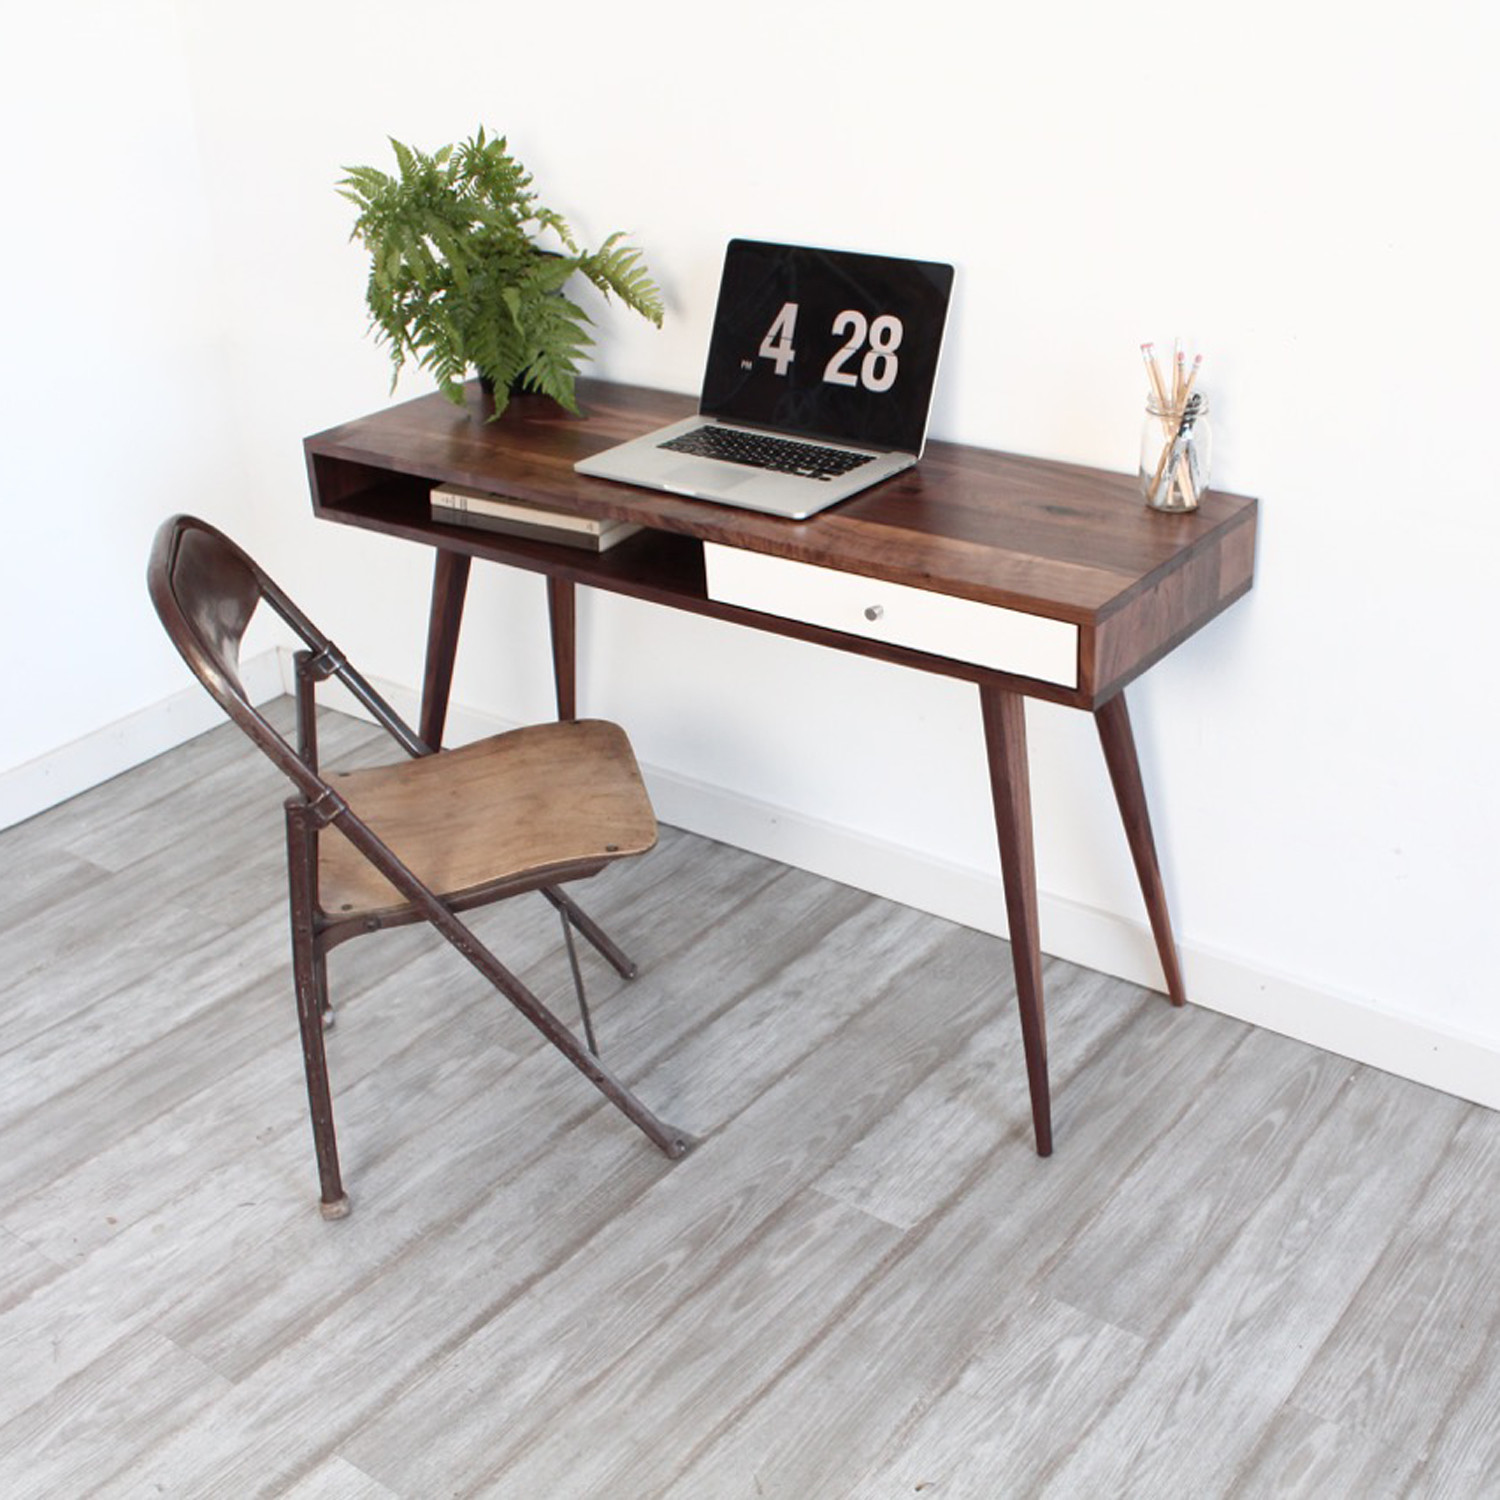 mid century modern laptop desk - the jeremiah collection - touch